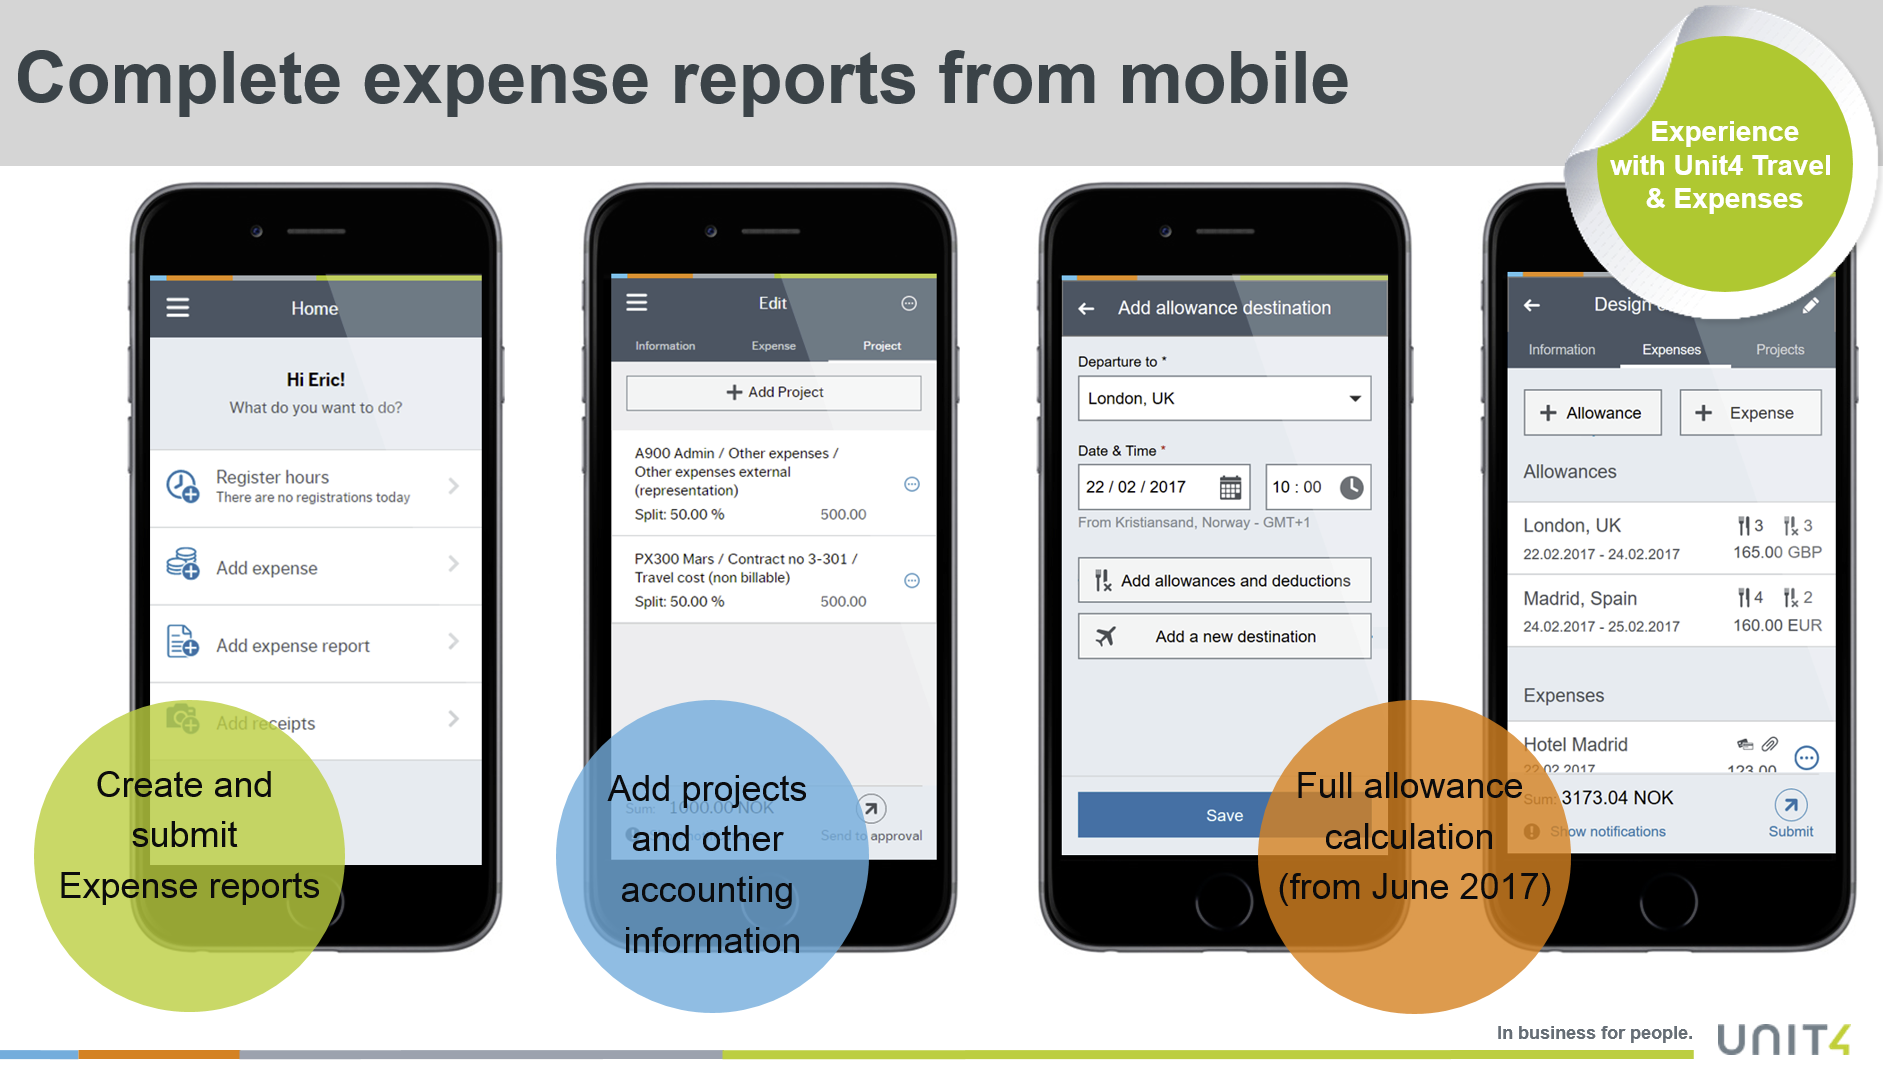 Unit4 Travel & Expenses Demo - Complete expense report from mobile